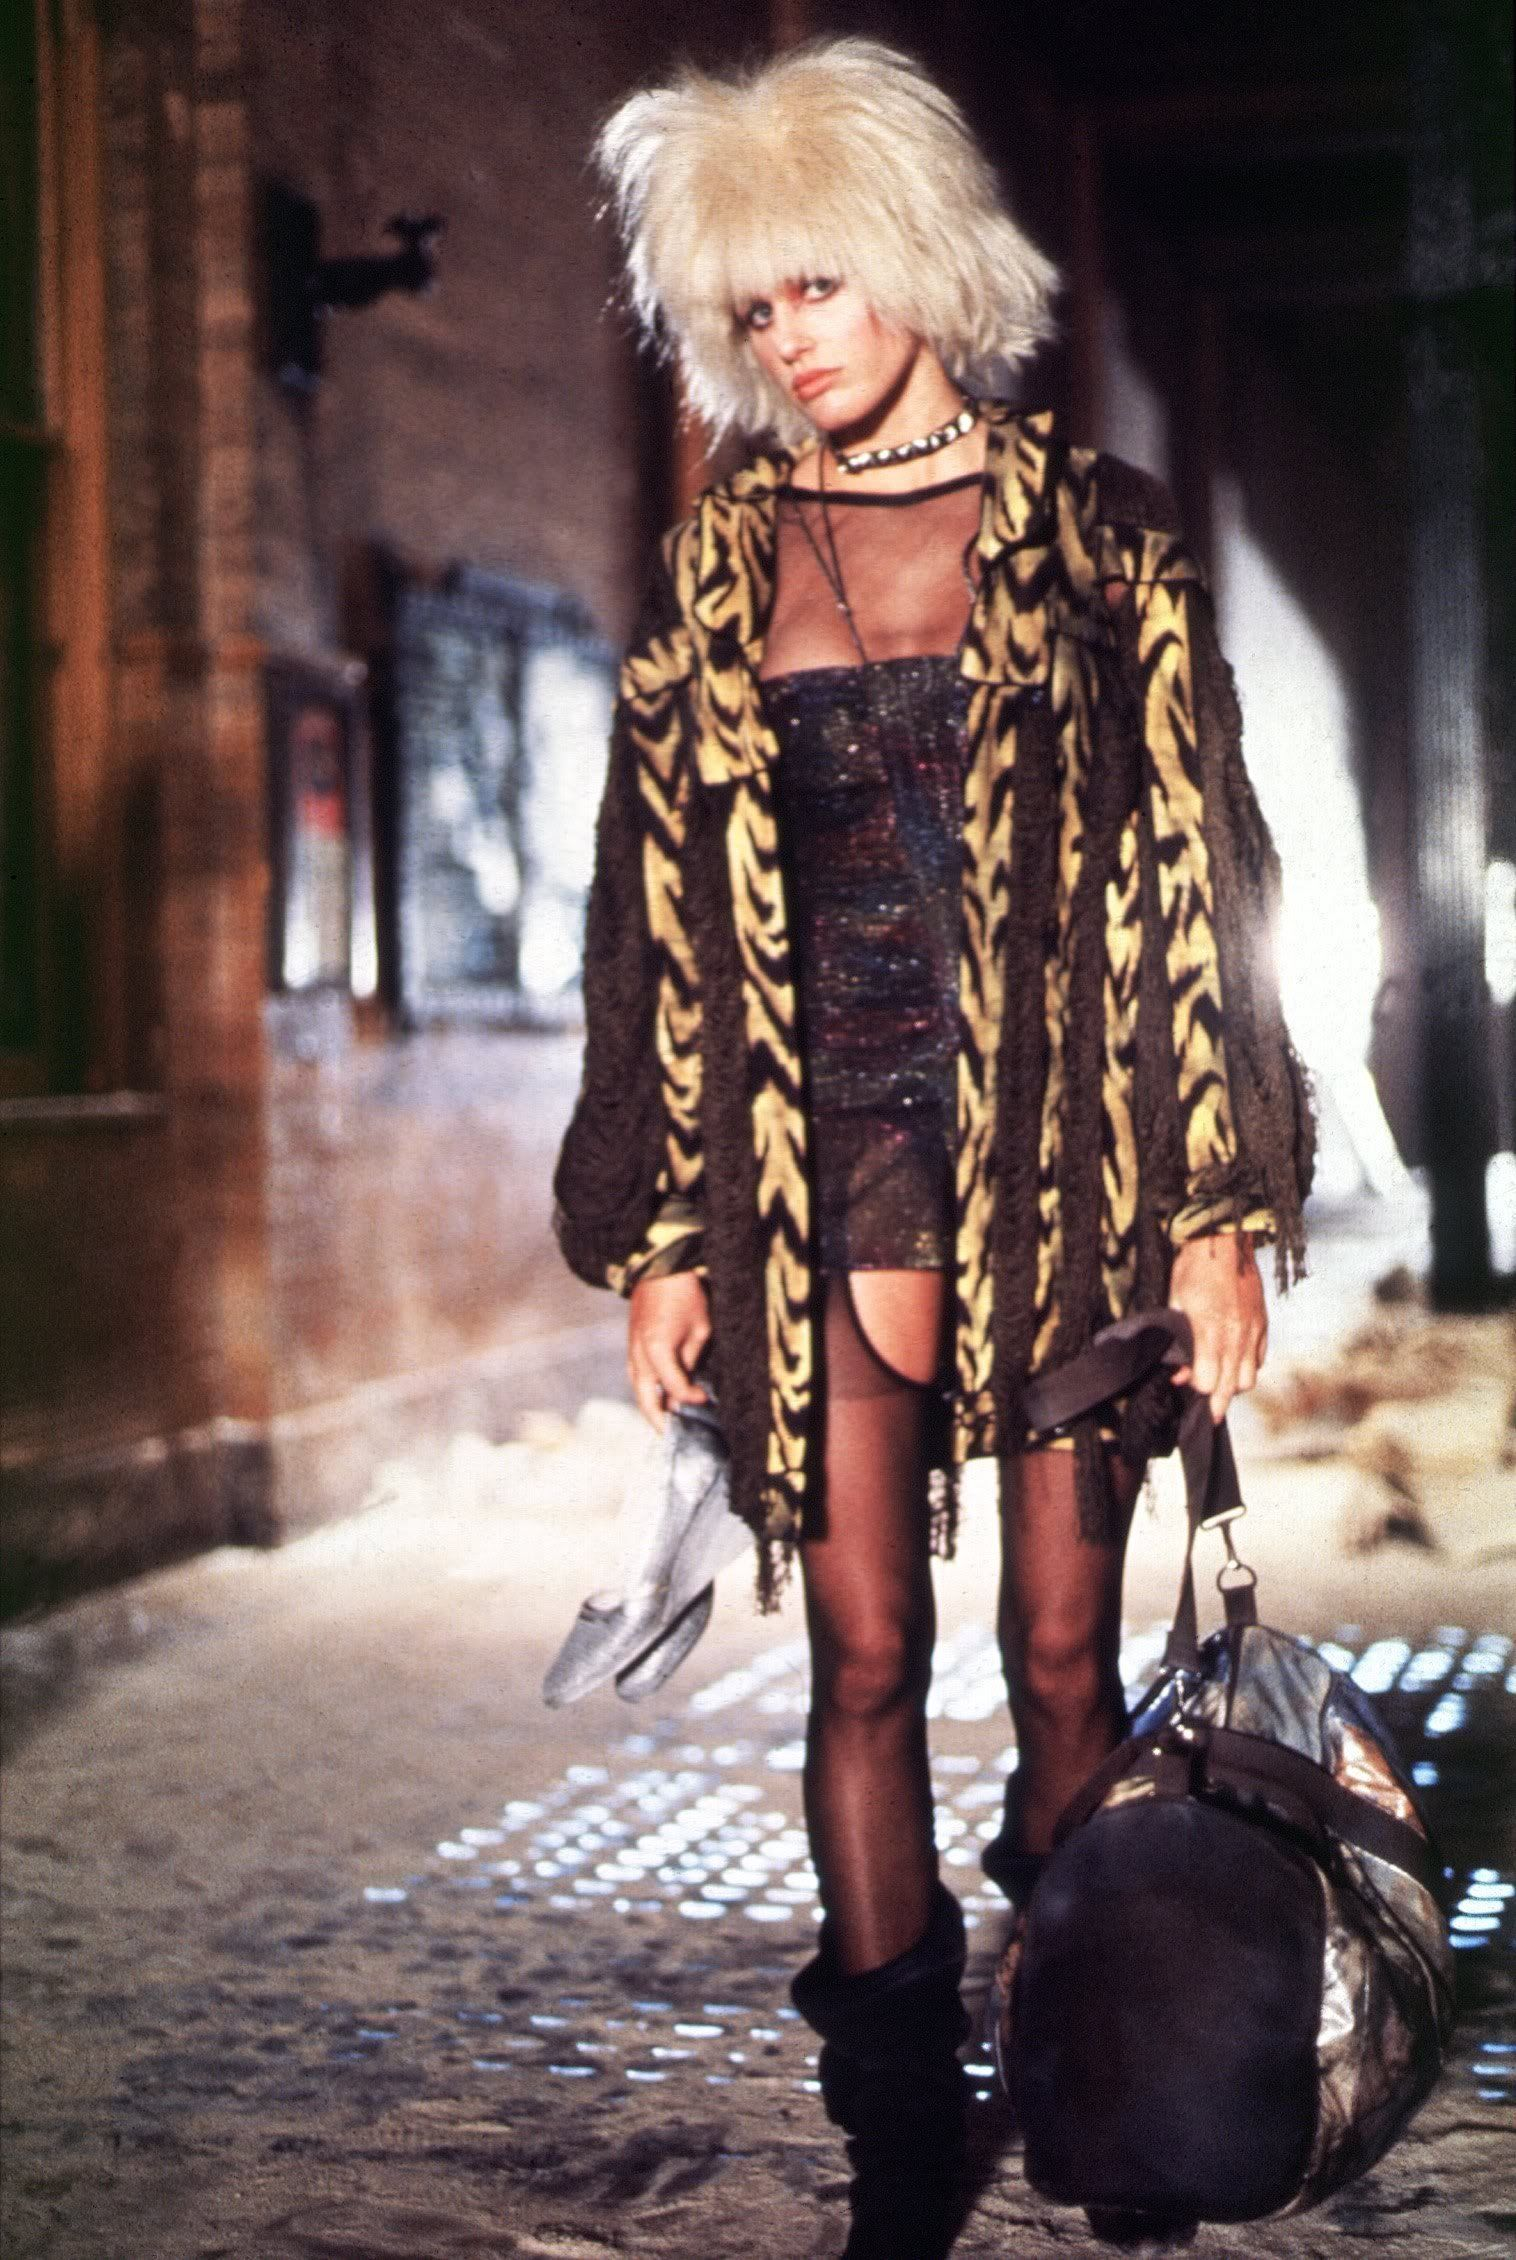 Barbie Meets Blade Runner At Ashley Williams' AW15 Show photo